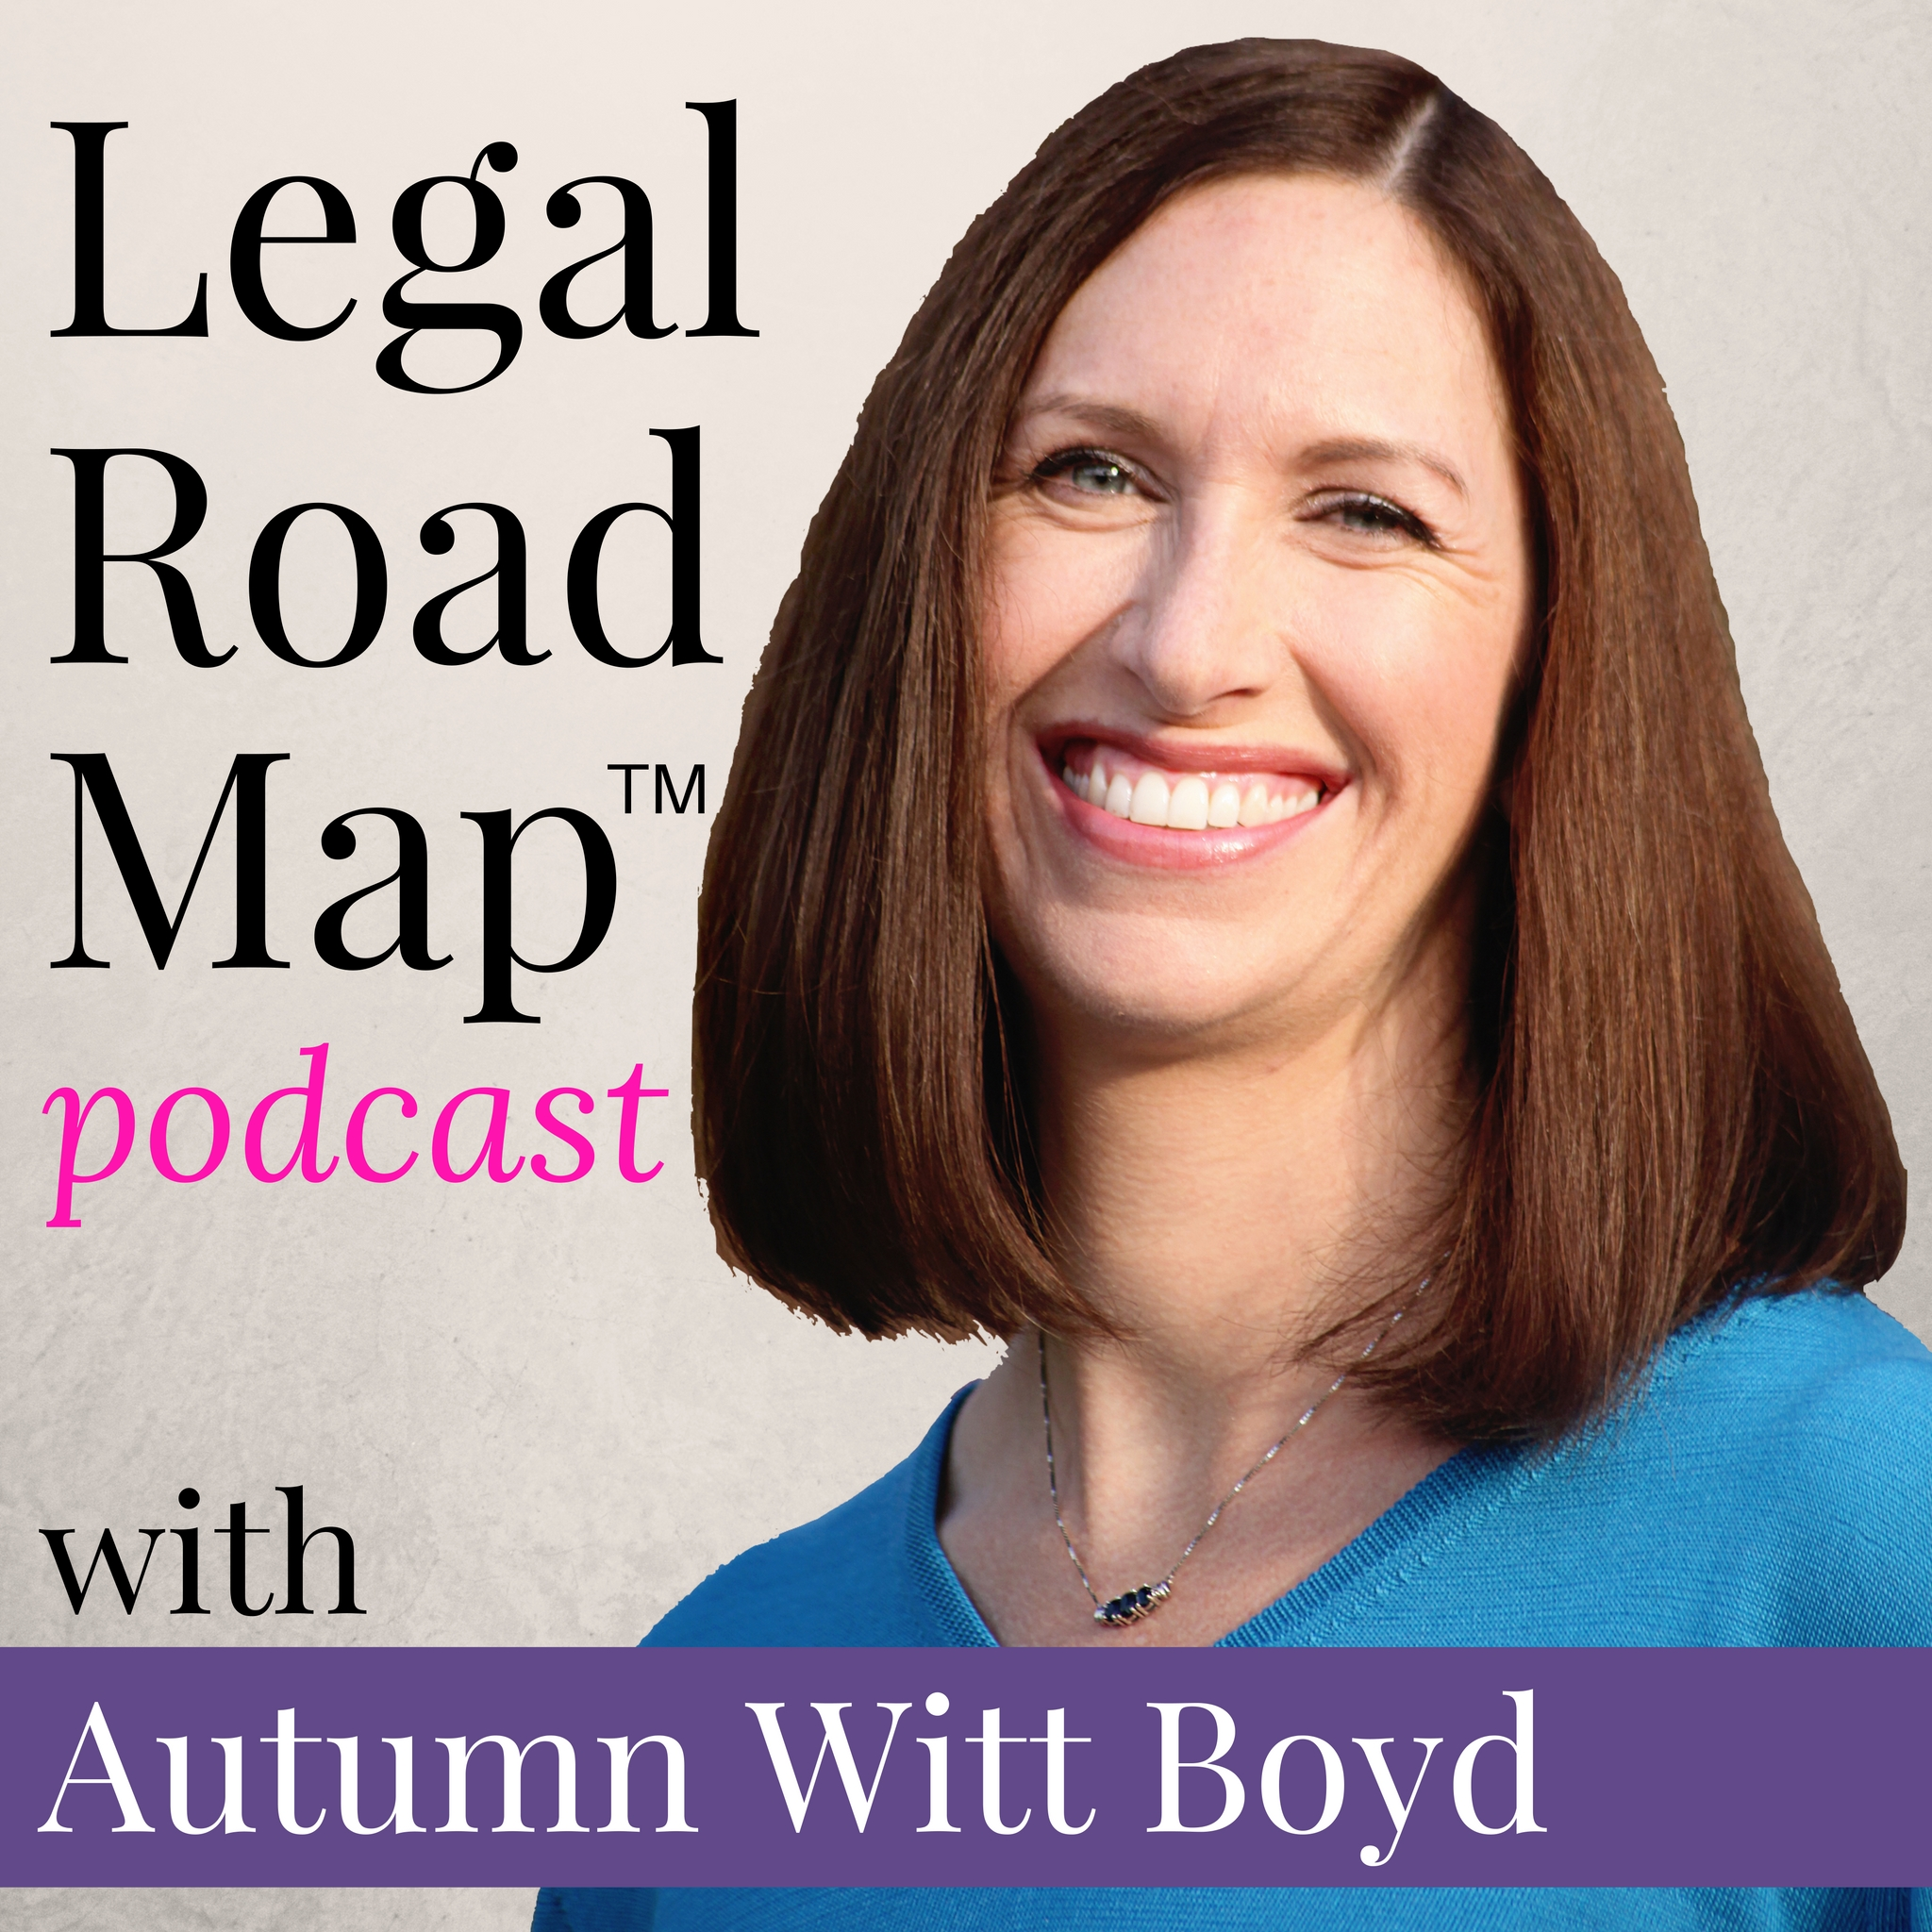 Legal Road Map Podcast - Legal advice for creative entrepreneurs.  Autumn is a lawyer specifically helping creatives to protect themselves and their businesses. She is super knowledgeable, friendly and down-to-earth! with Autumn Witt BoydPodcast + Website